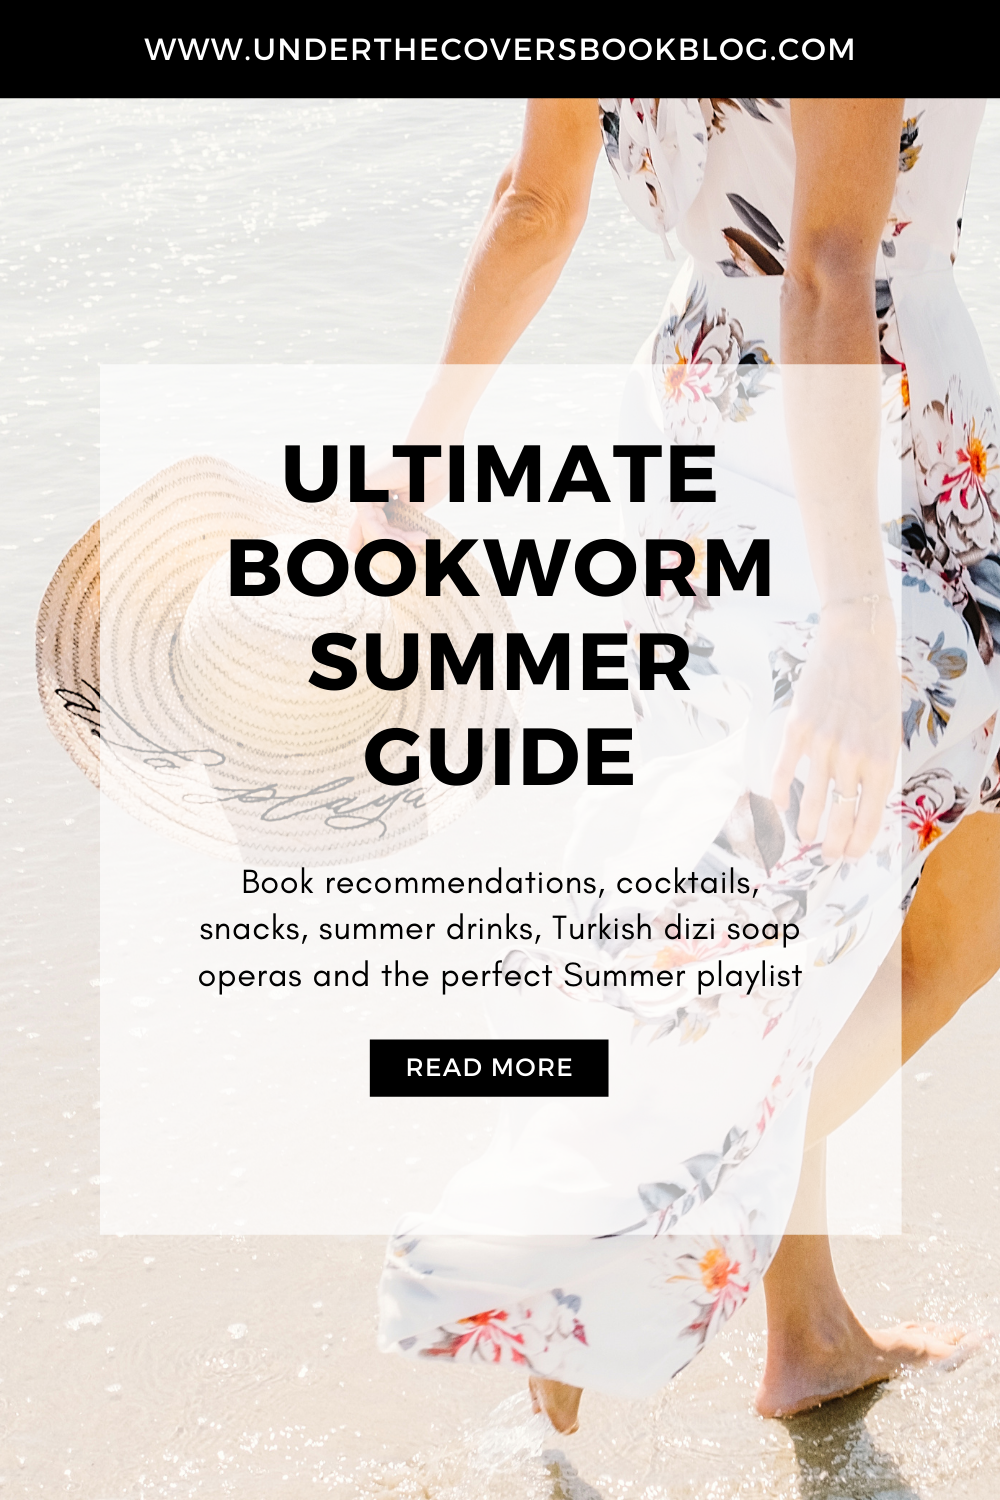 Take Me to the Beach: The Ultimate Summer Guide